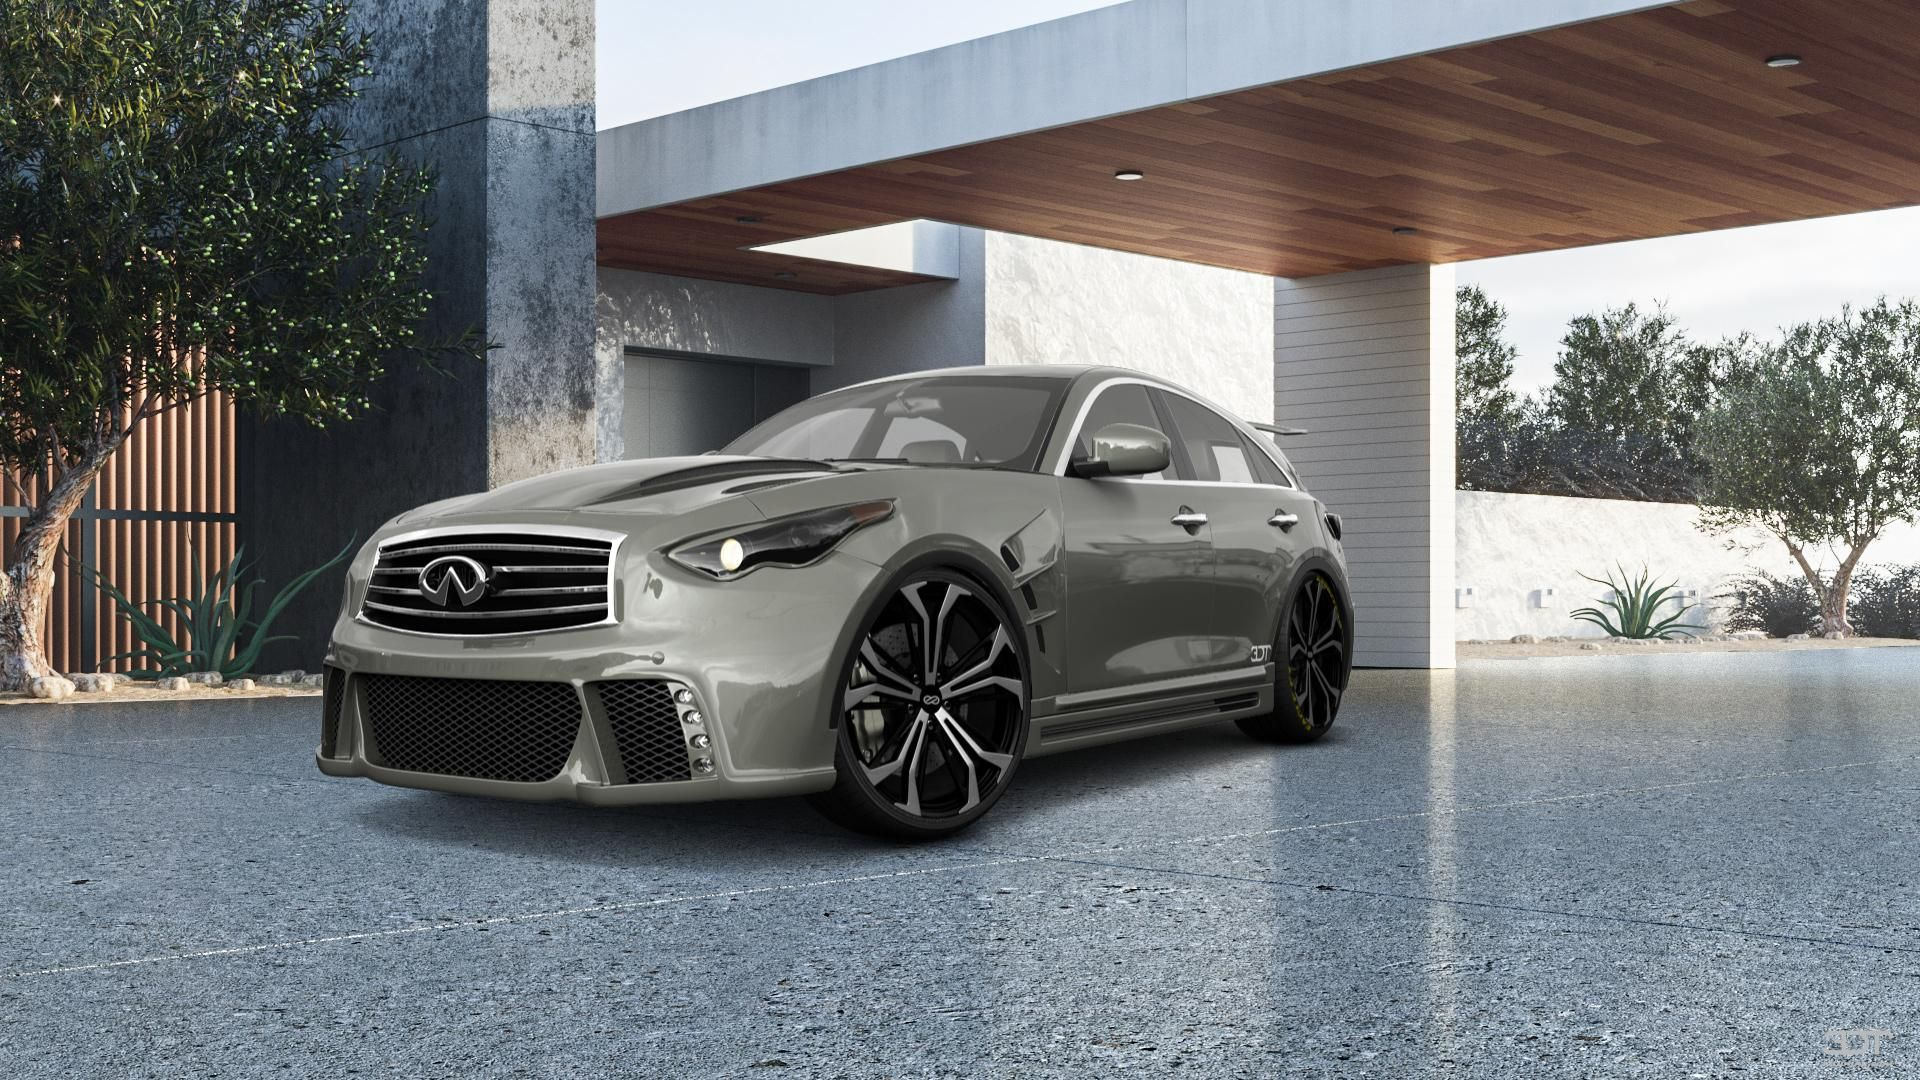 Checkout my tuning Infiniti FX50 2009 at 3DTuning 3dtuning